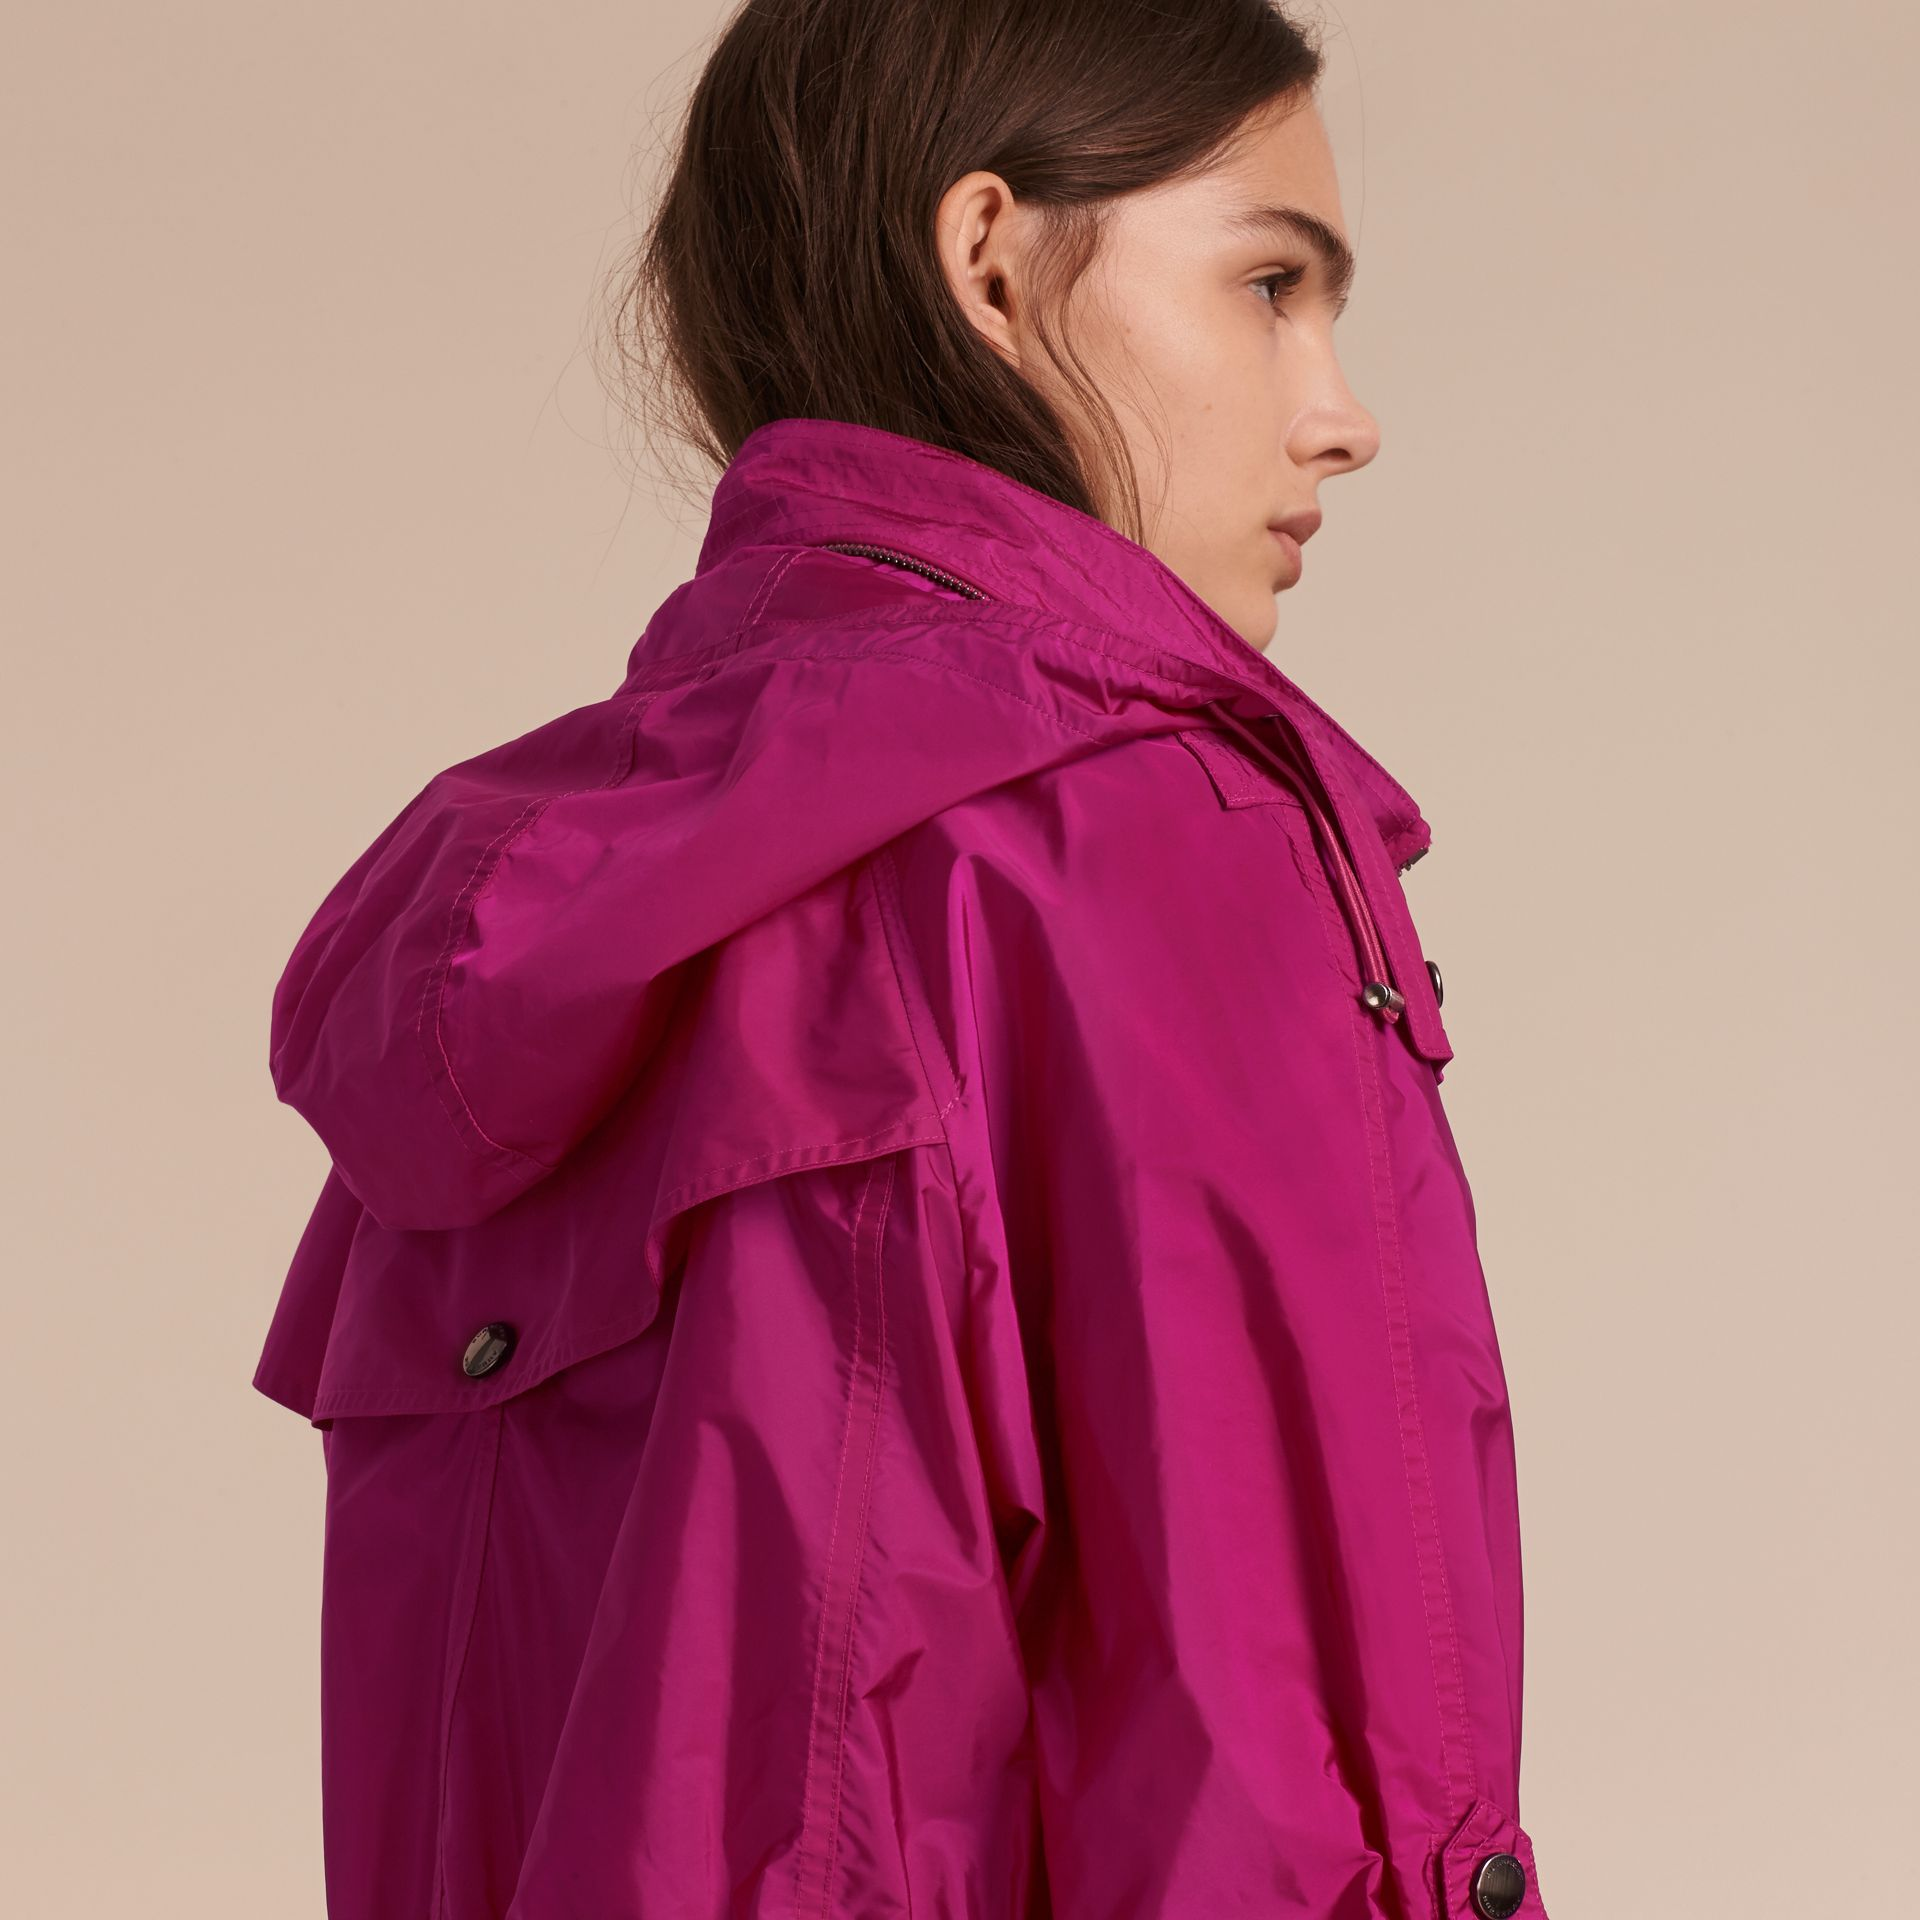 Fuchsia Showerproof Parka Jacket with Packaway Hood Fuchsia - gallery image 6